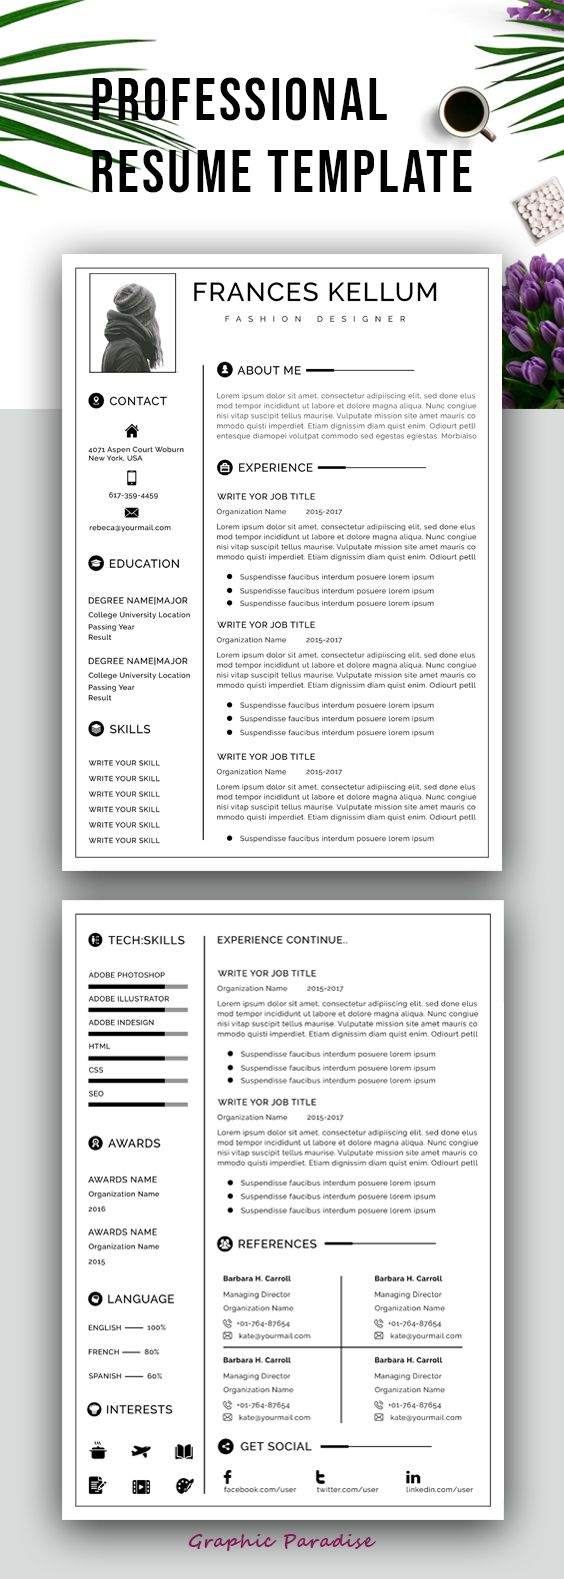 5124 best RESUME | CV | LEBENSLAUF images on Pinterest | Resume ...